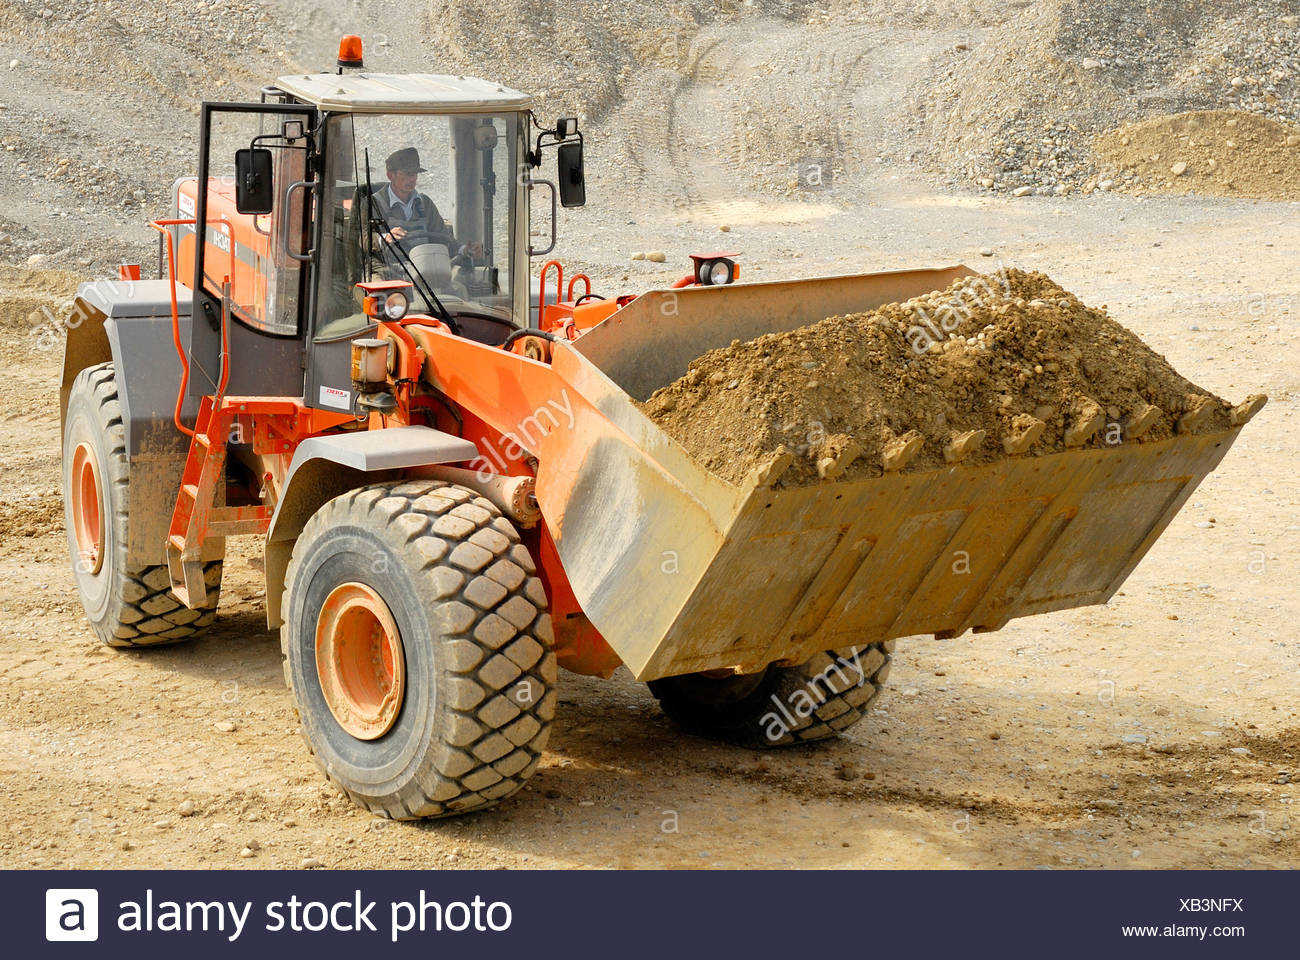 Hitachi LX 290E wheeled loader carrying gravel in a gravel pit - Stock Image